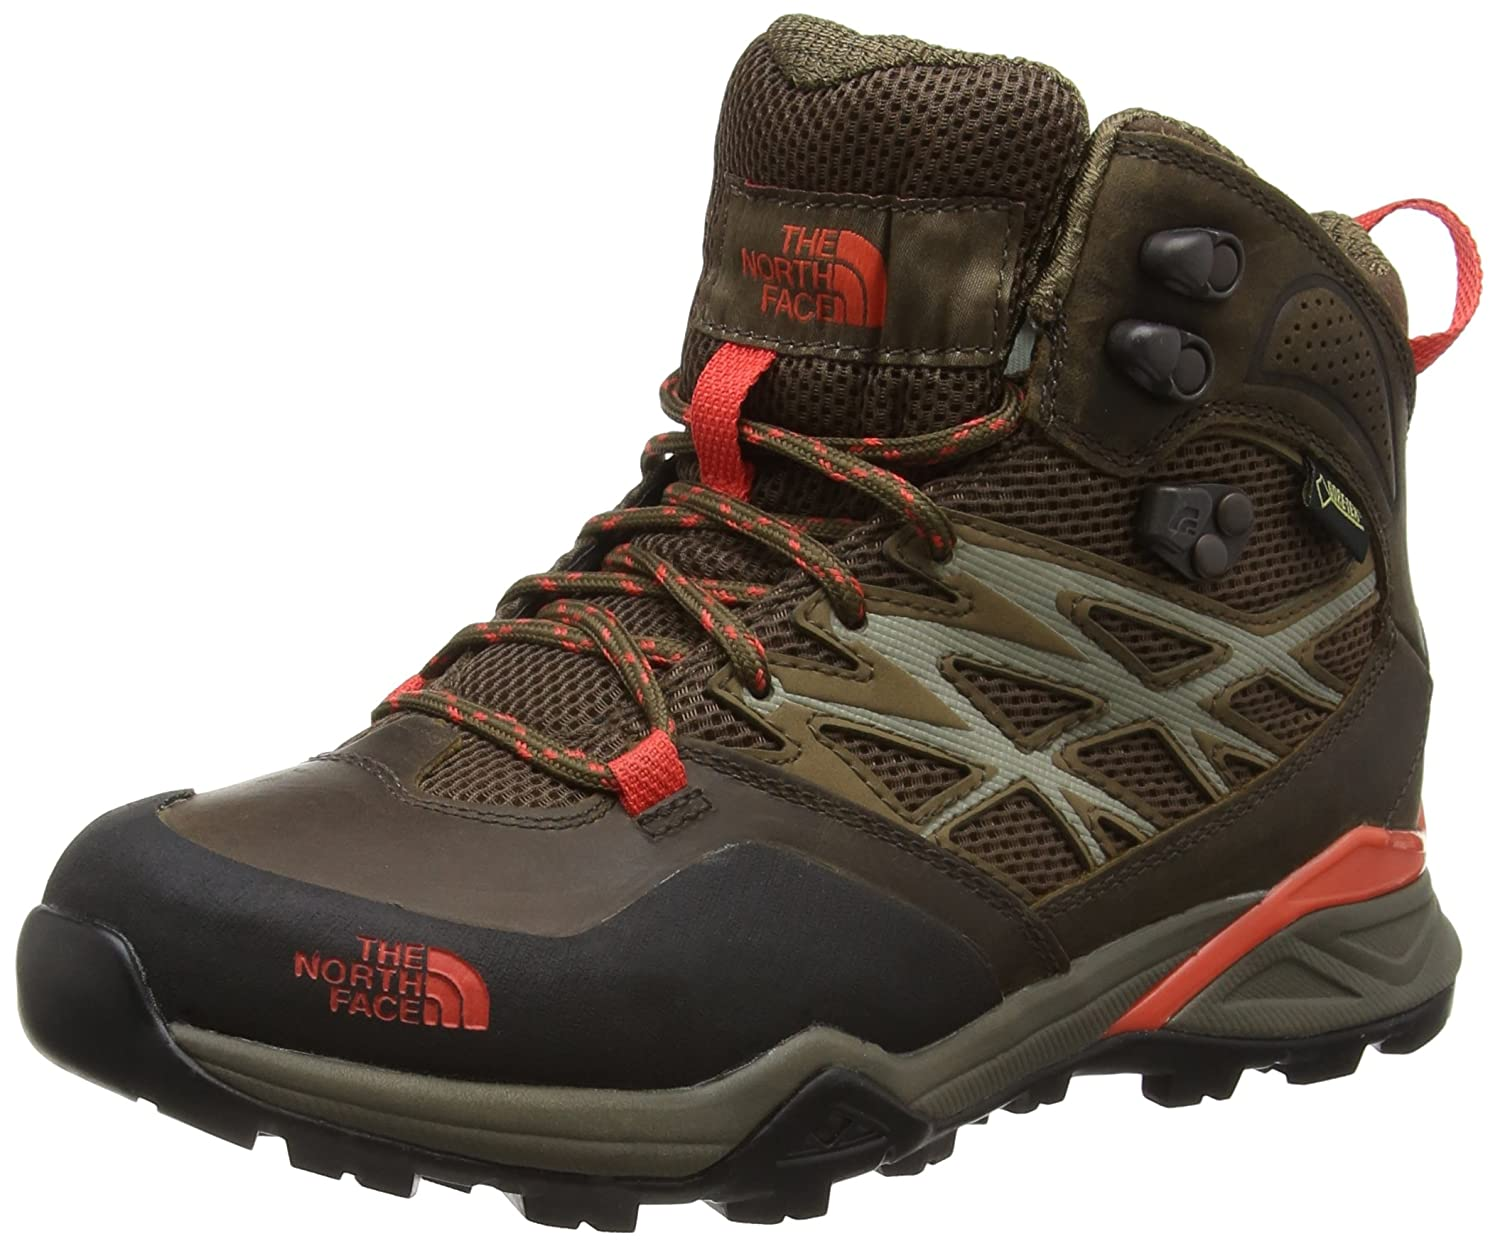 The North Face Hedgehog Hike Mid Gore-Tex Damen Wanderschuhe